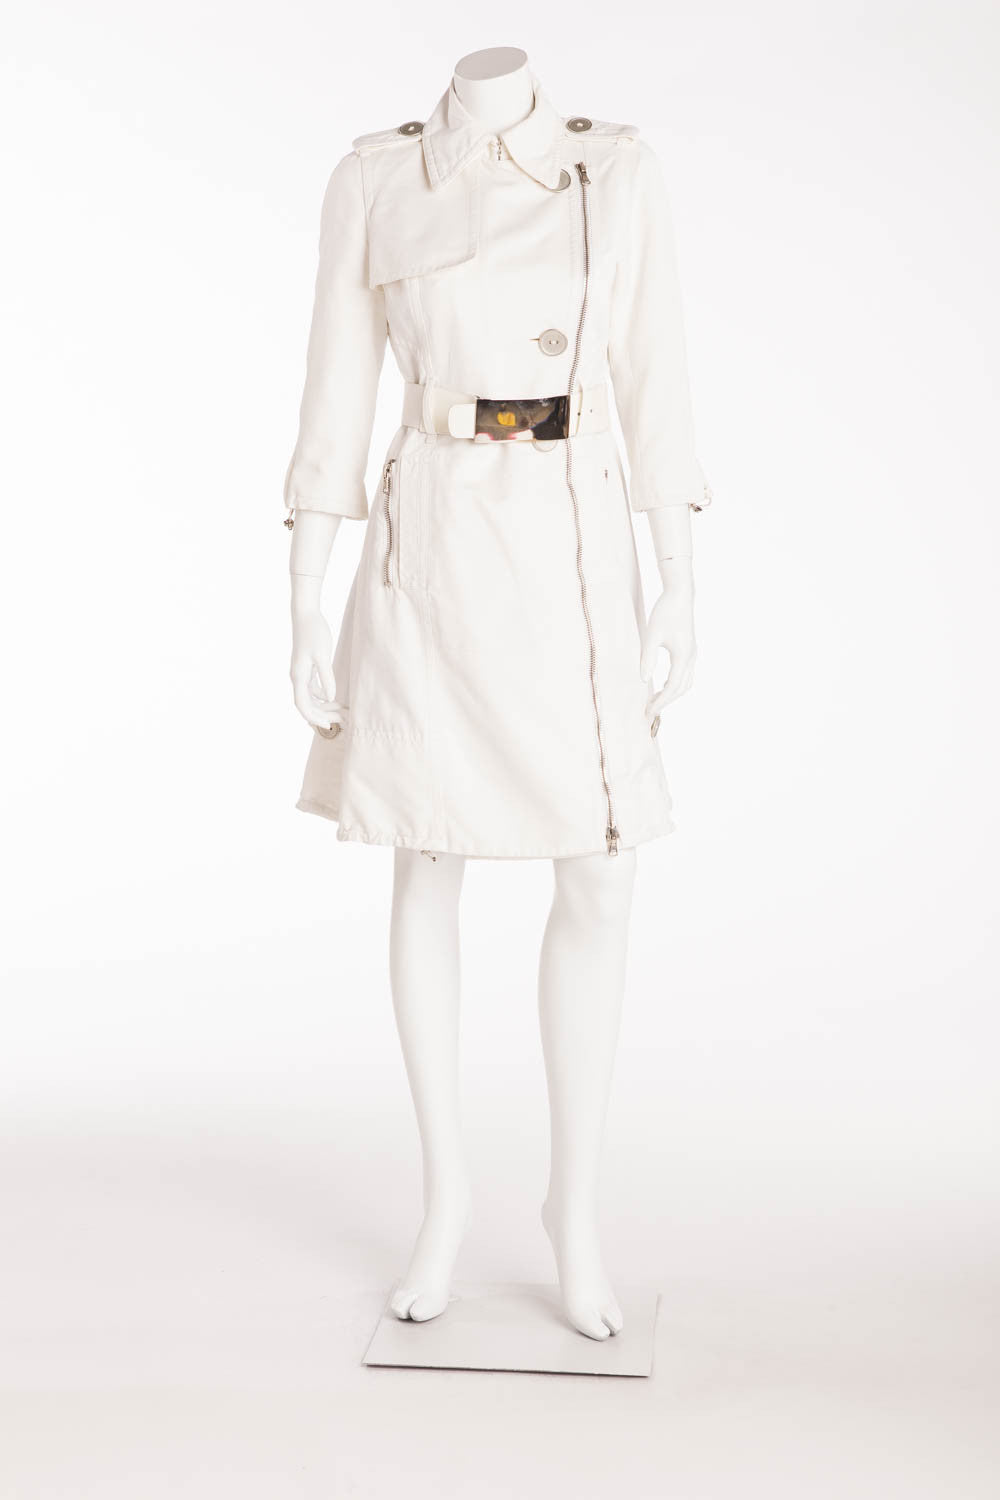 Kaufman Franco - White Trenchcoat - IT 44